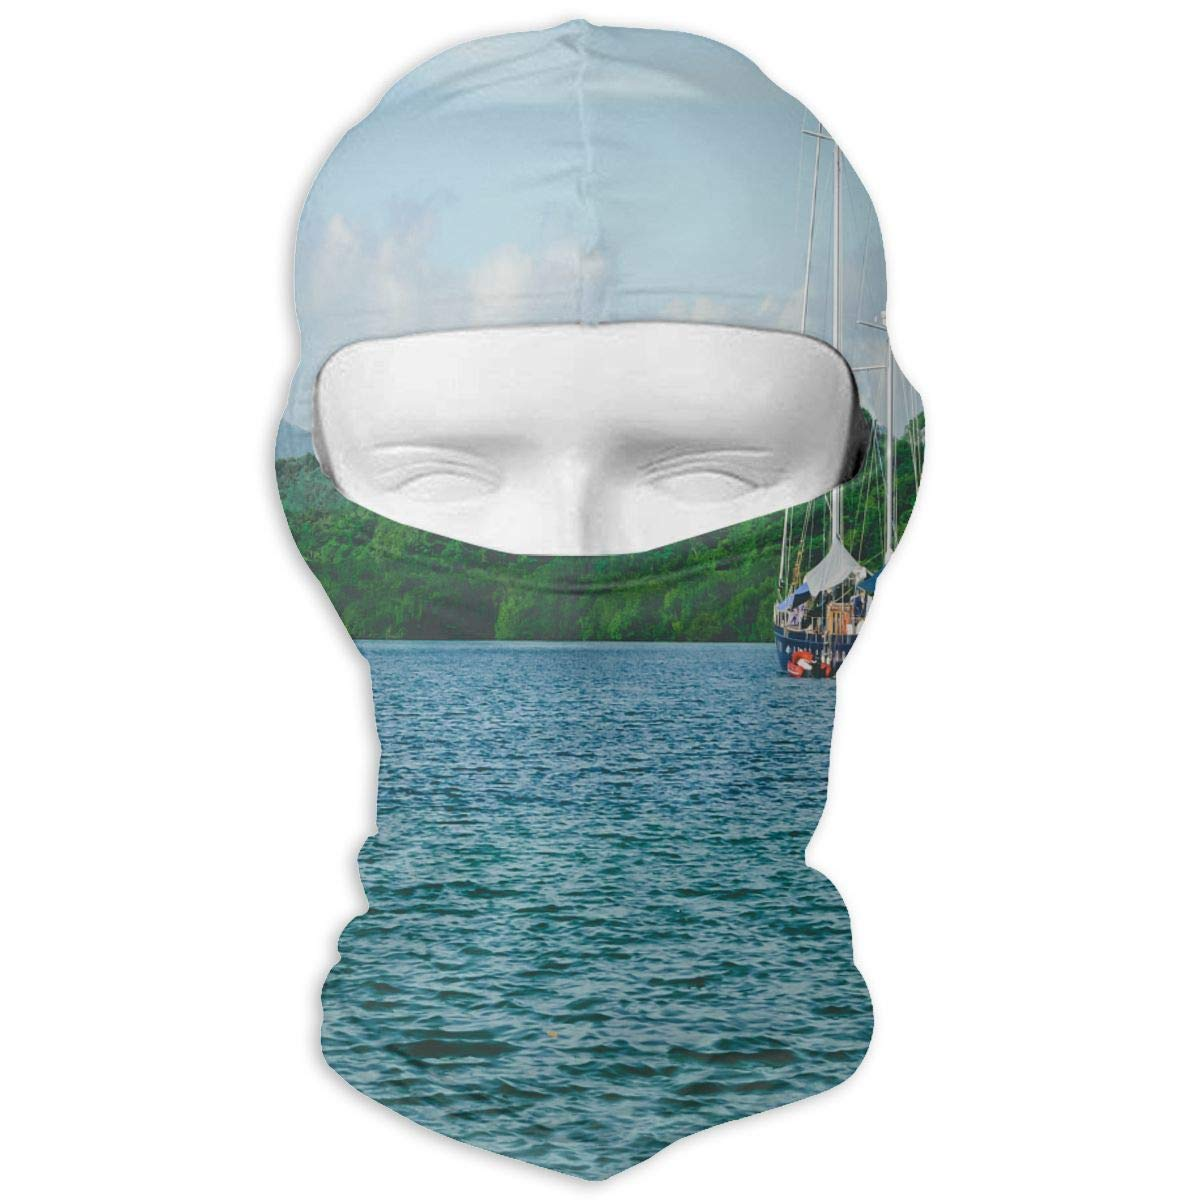 Balaclava Summer Floral Flowers Tropical Pineapples Full Face Masks UV Protection Ski Cap Womens Headwear for Cycling